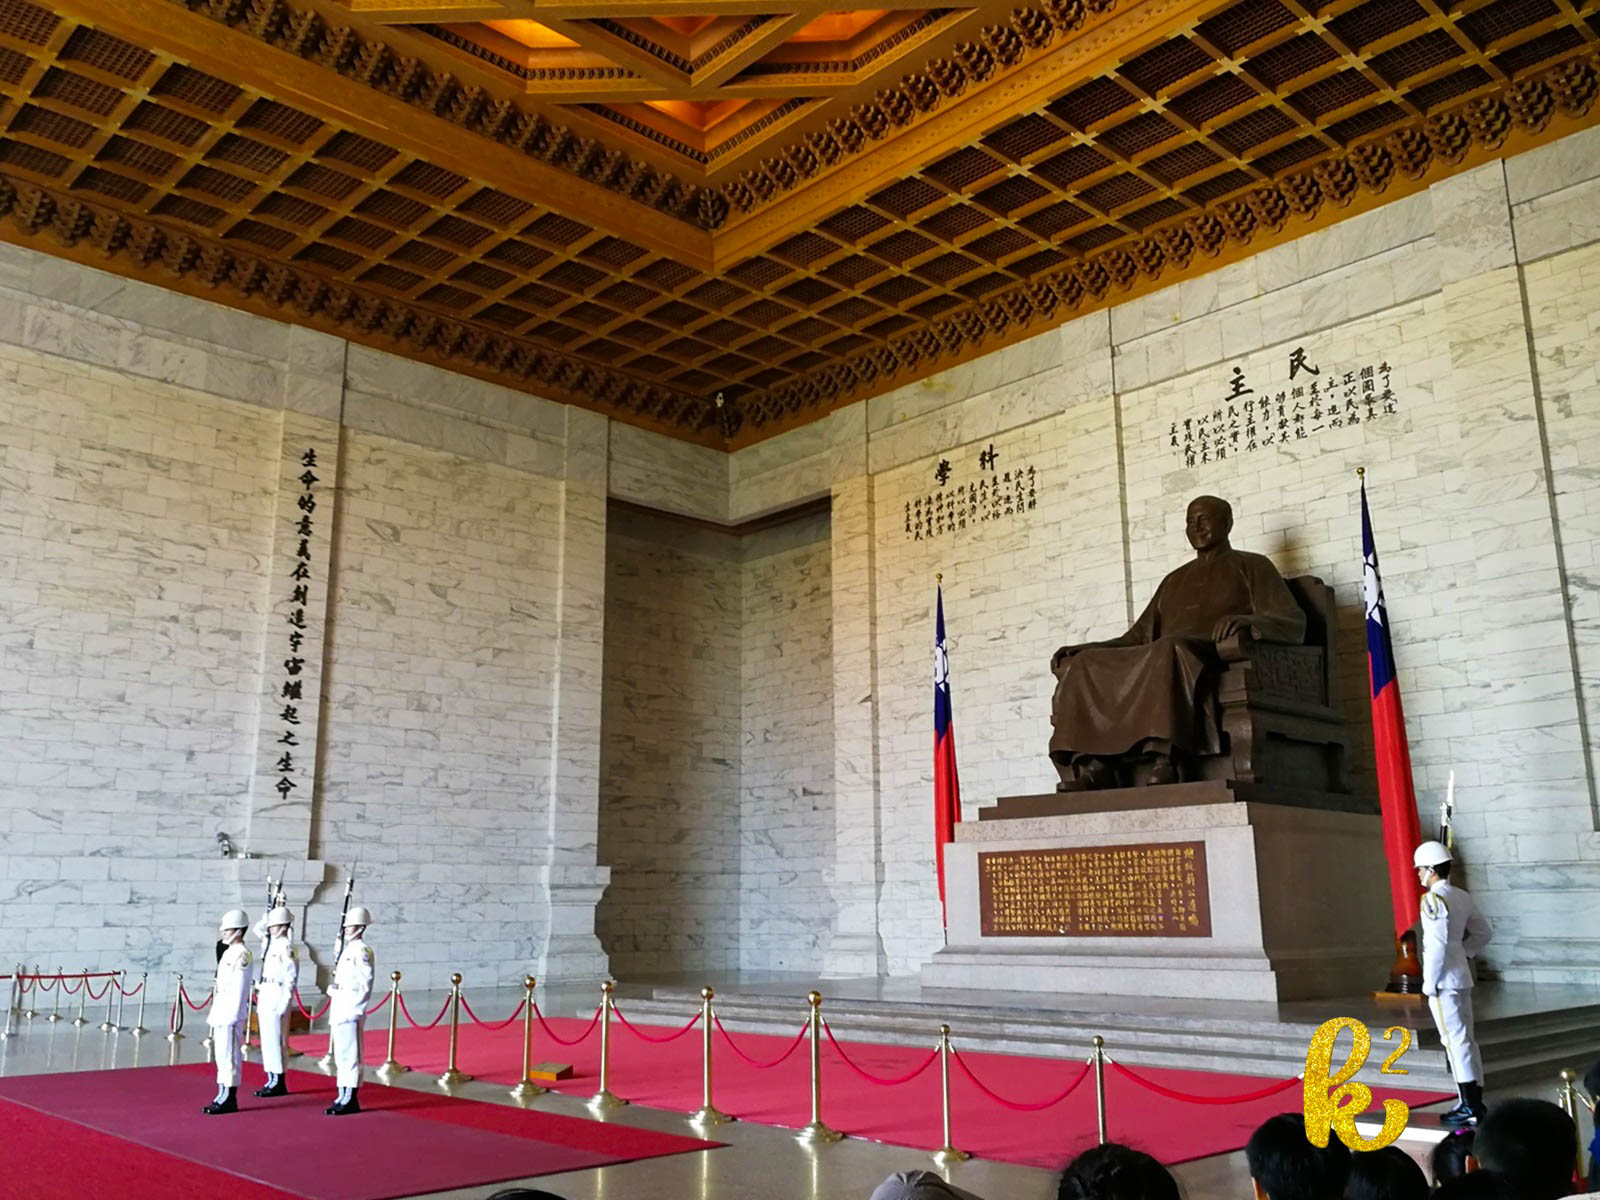 taiwan, travel, places to visit in taiwan, taiwan tourism, taiwan travel, chiang kai shek